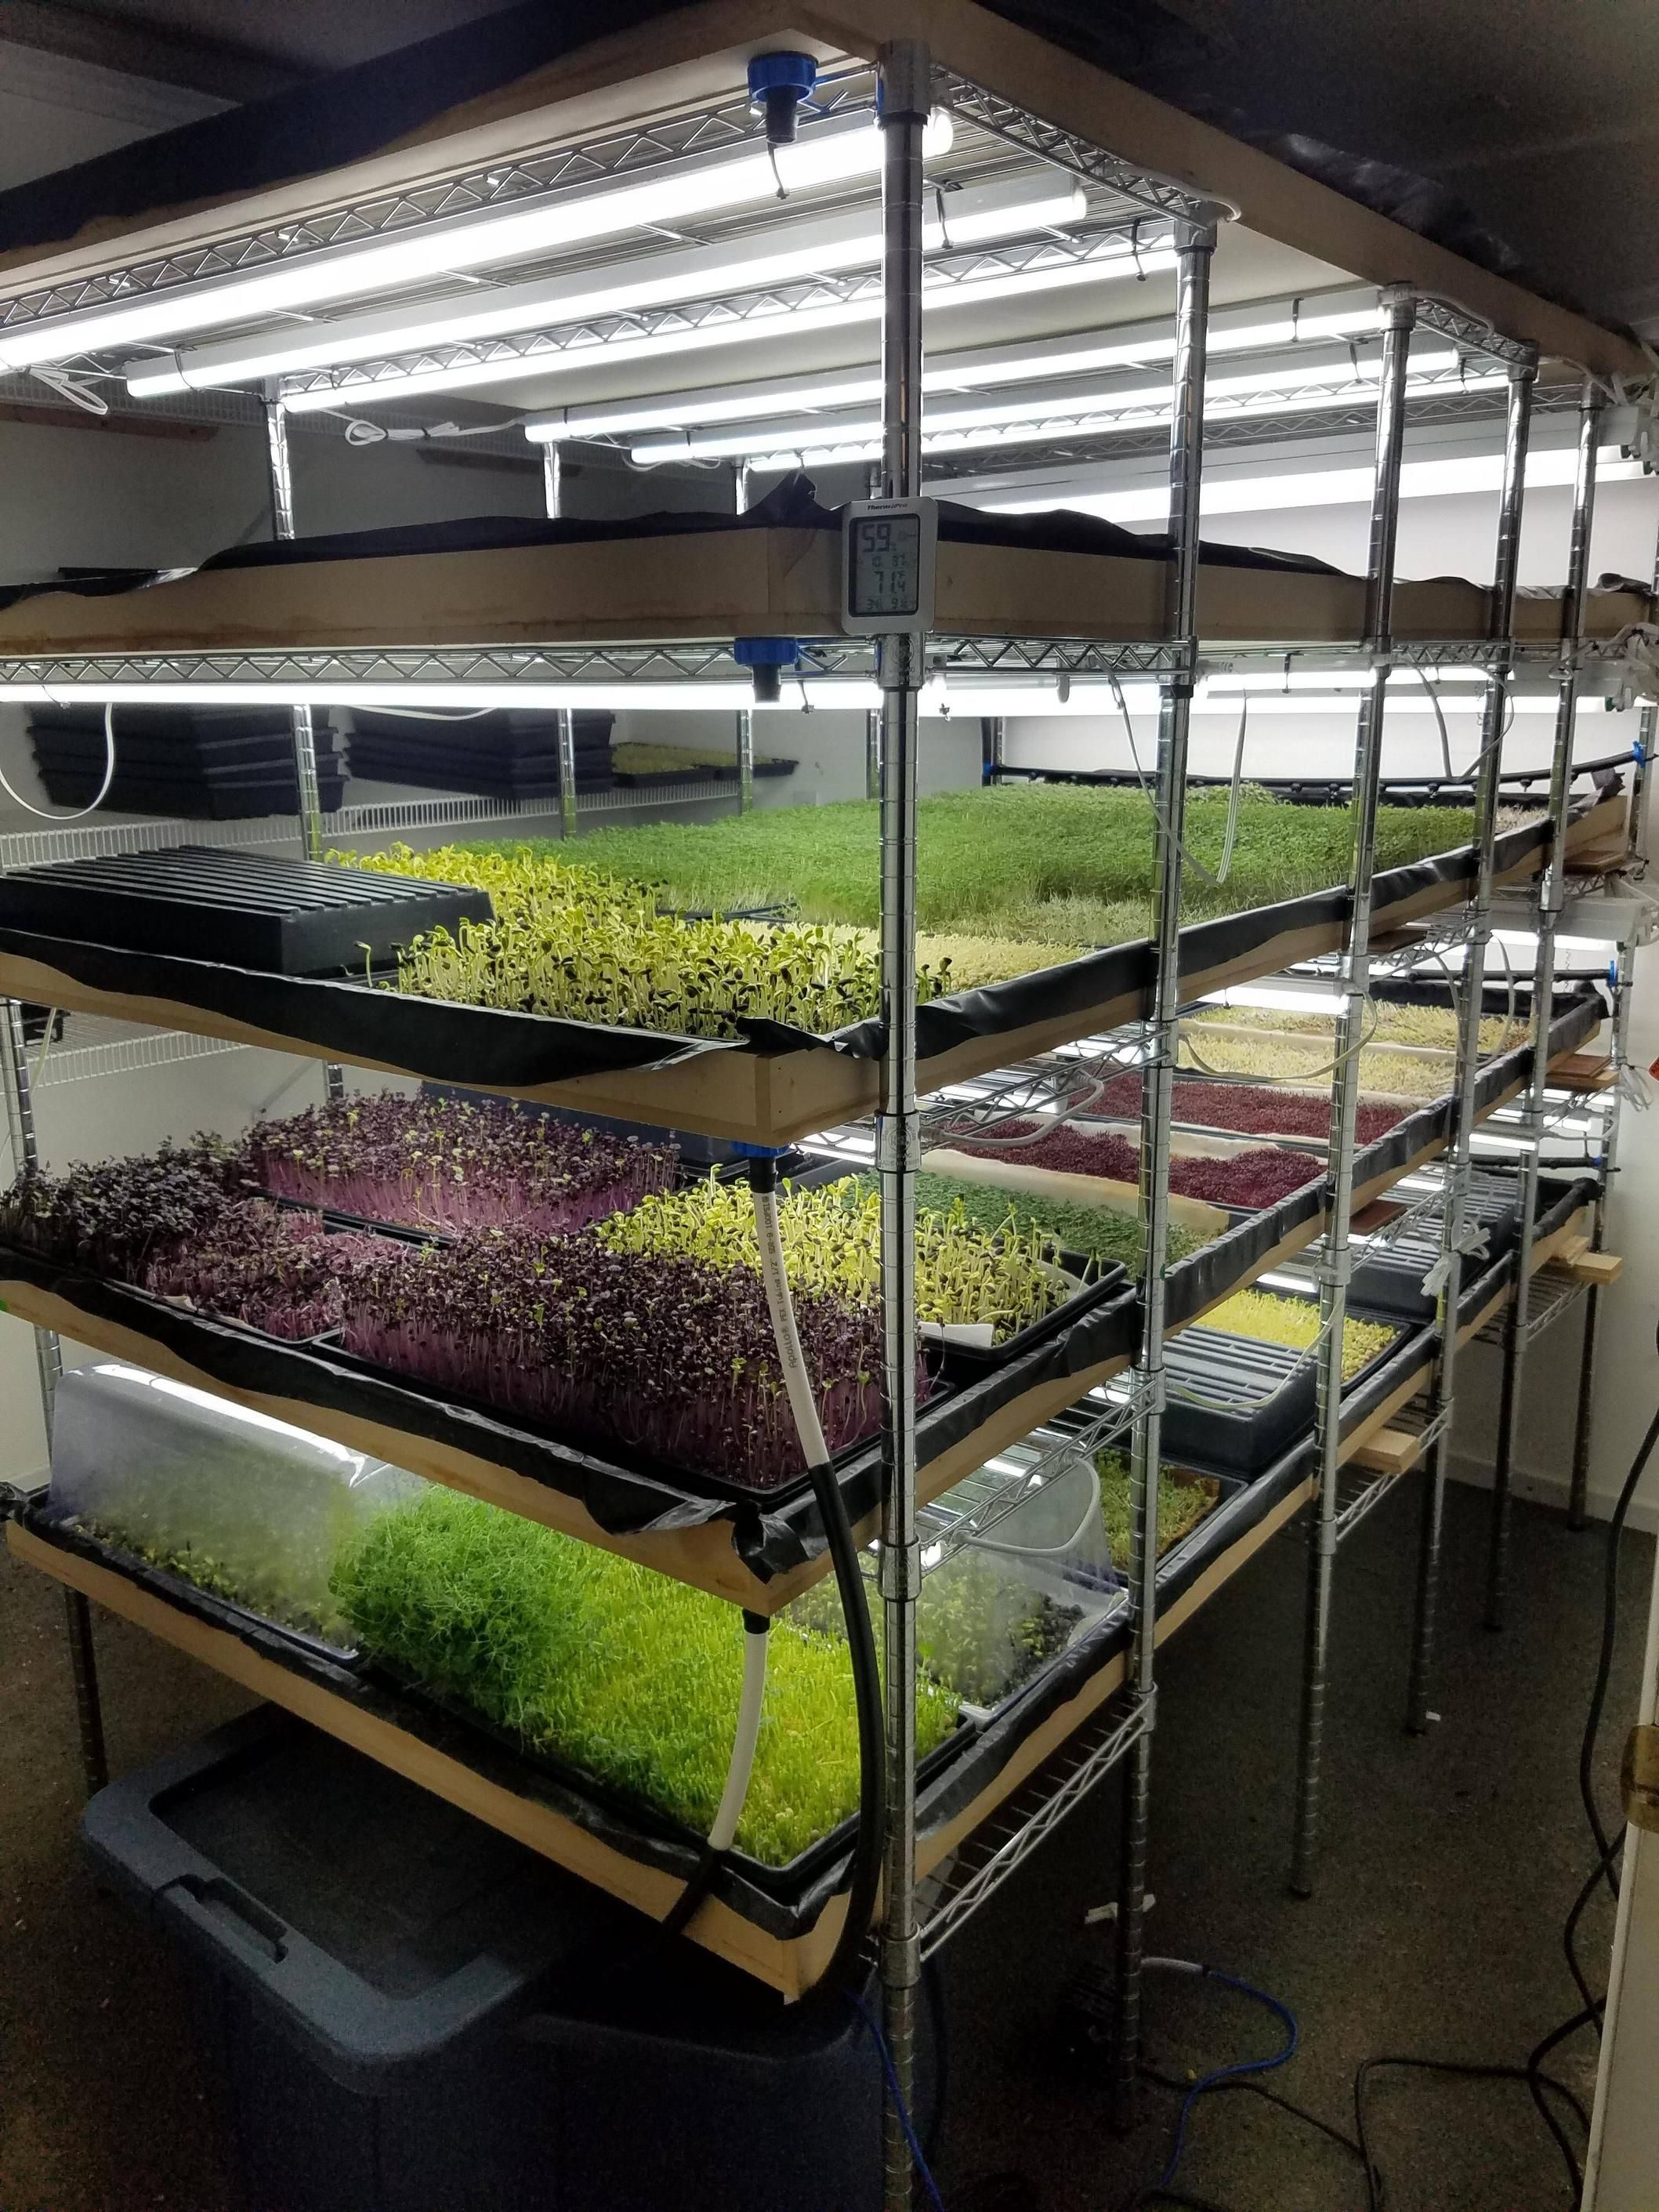 Microgreens! Our new grow room setup is working out swell